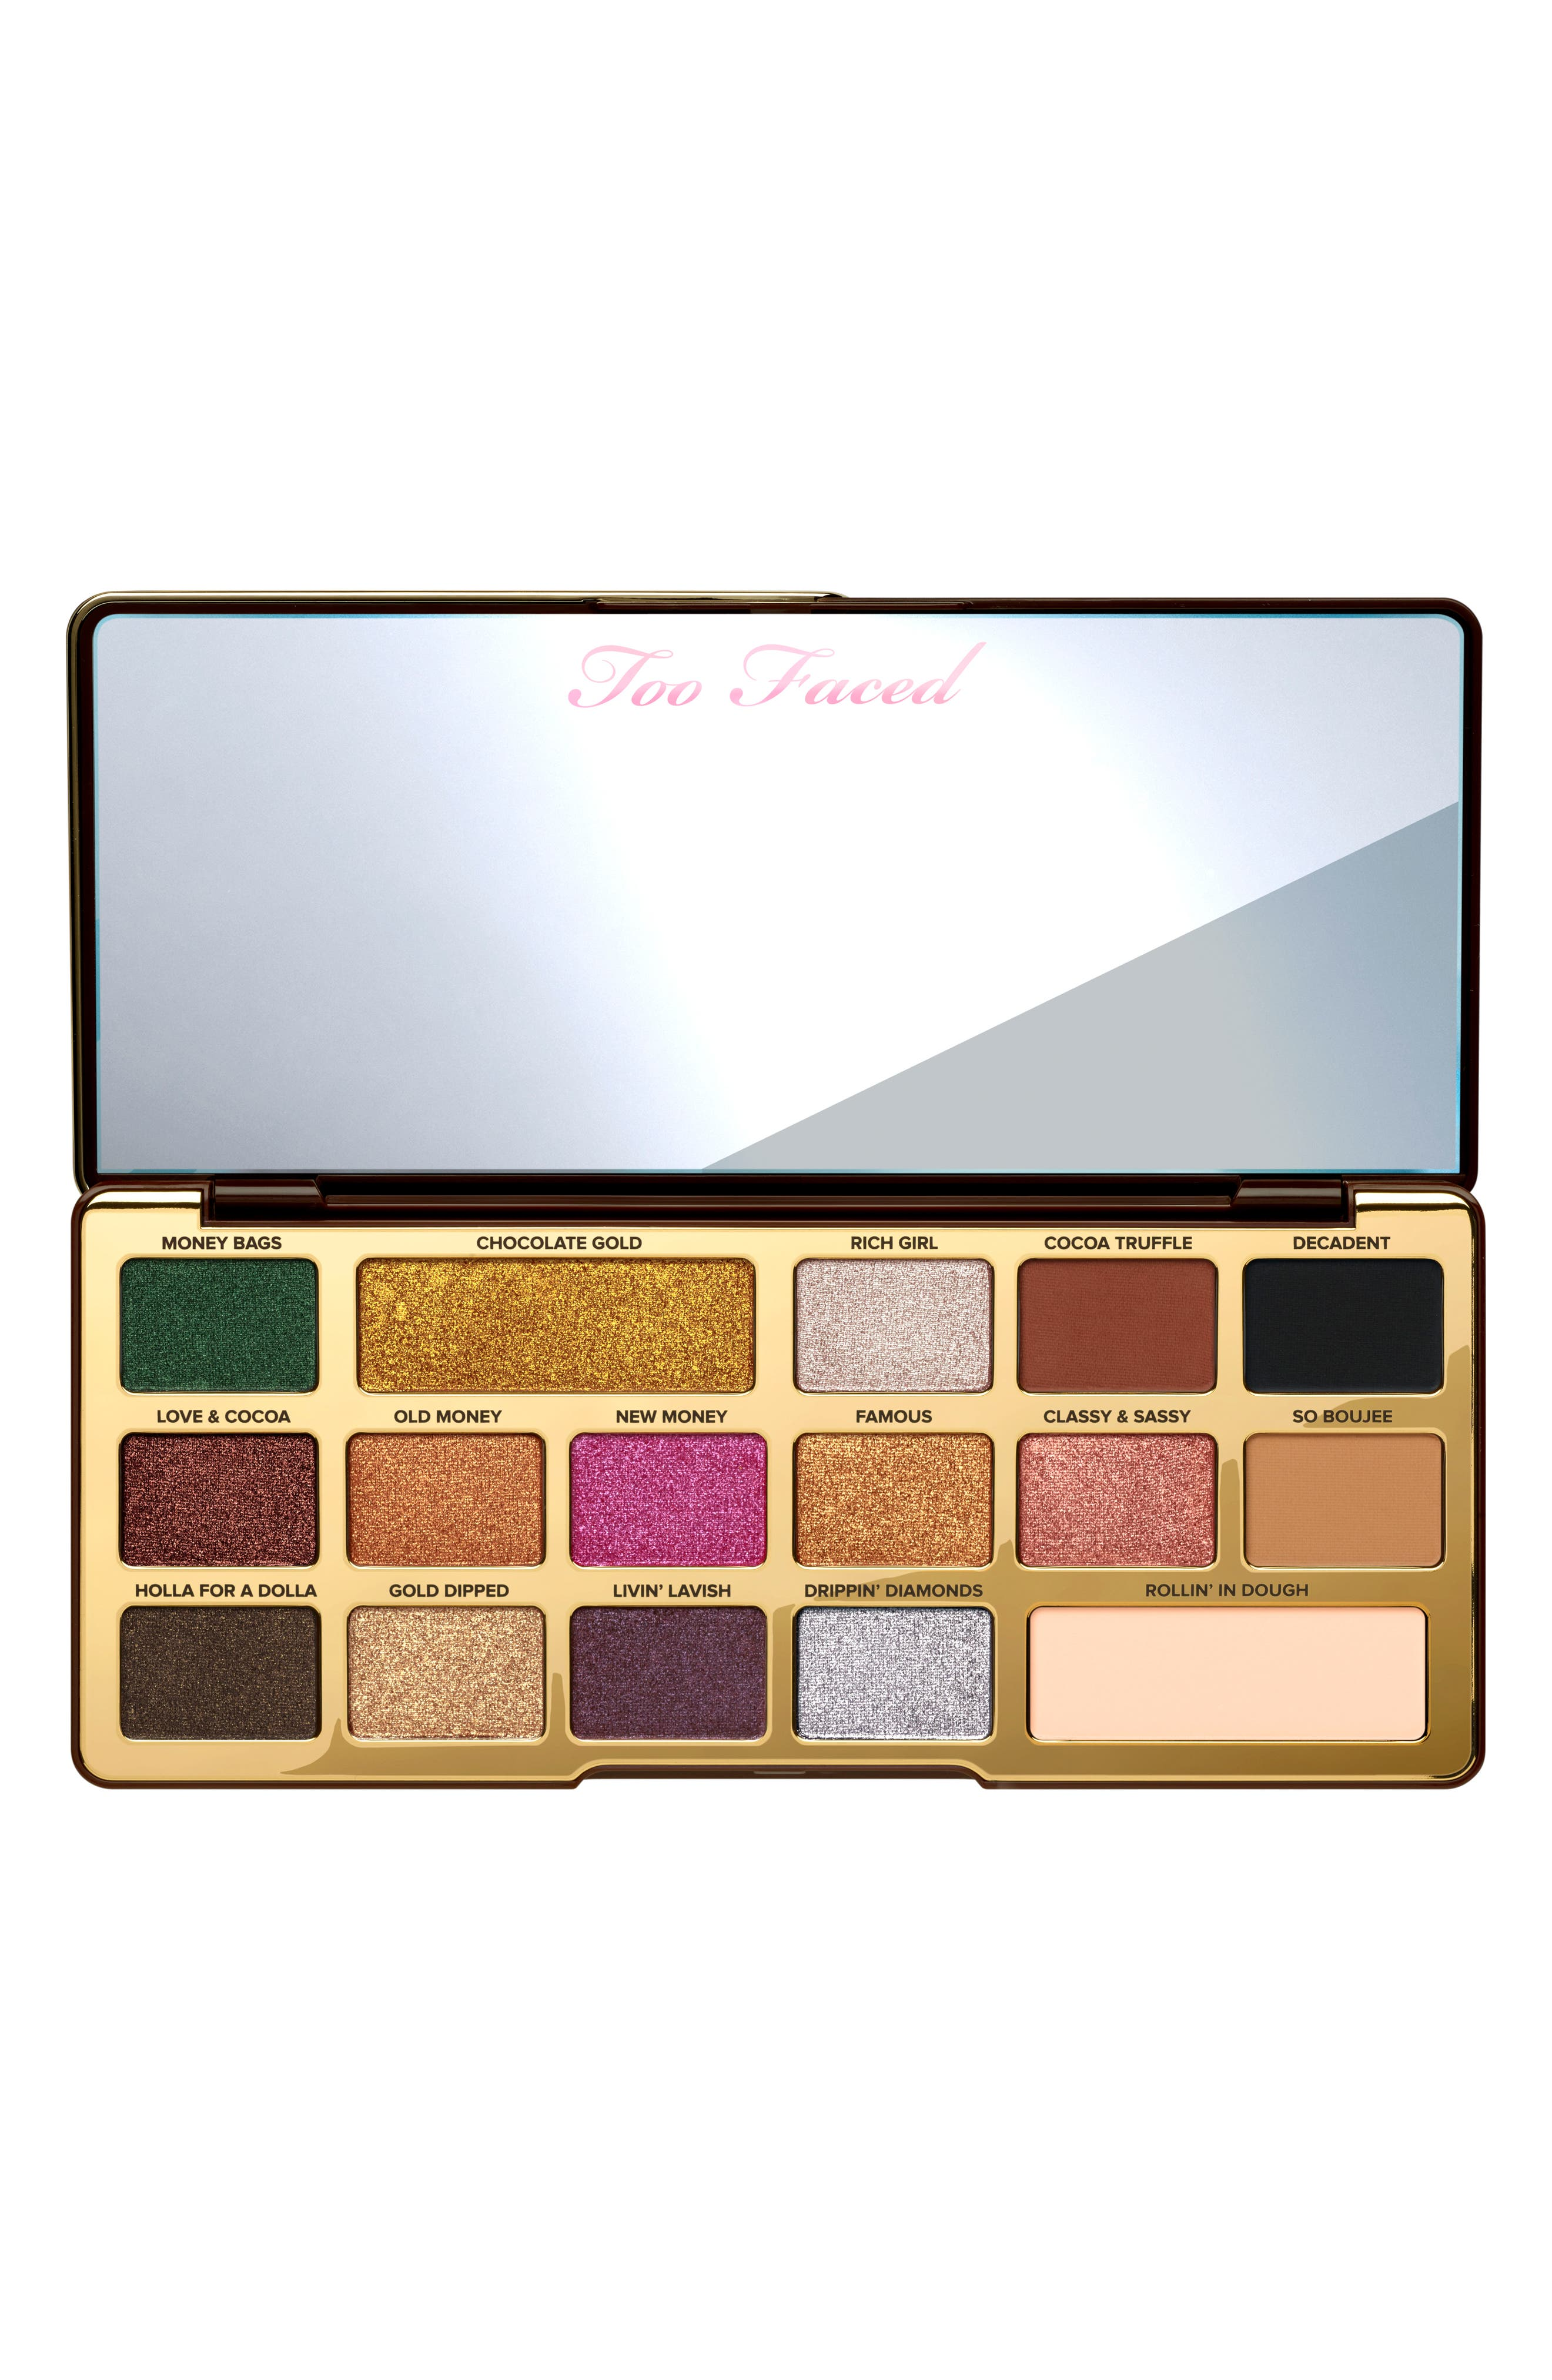 Chocolate Gold Eyeshadow Palette,                             Alternate thumbnail 7, color,                             No Color